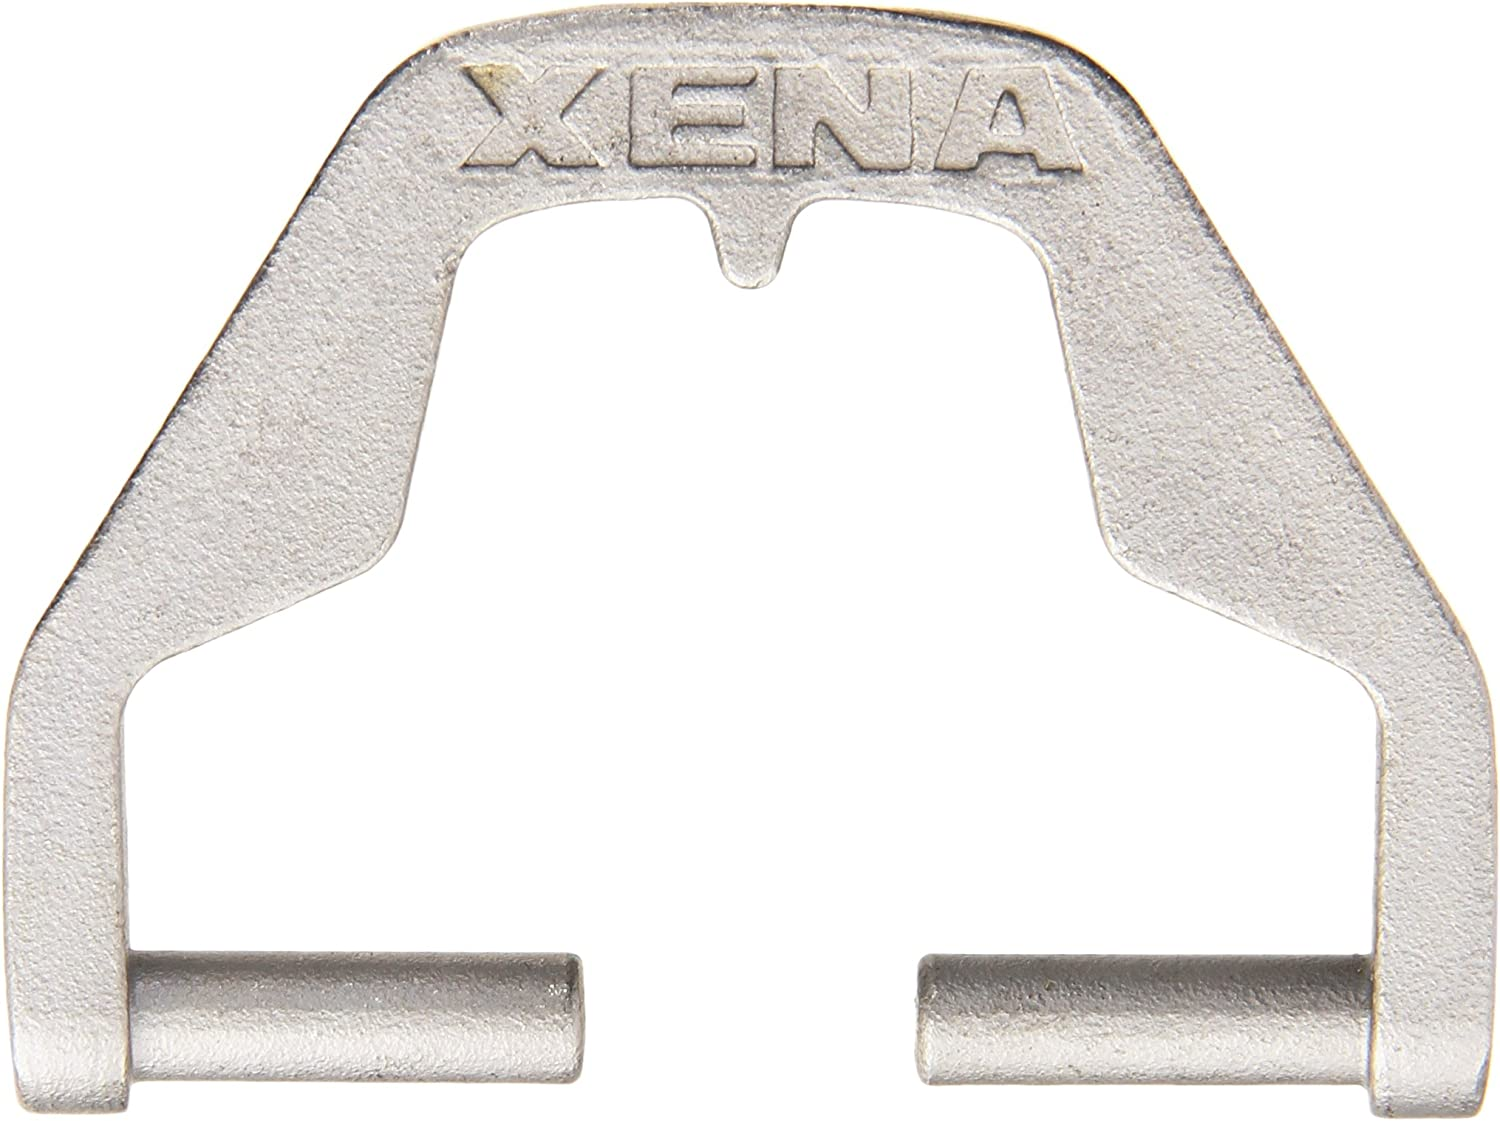 Xena Dealing full price reduction XCA-15 Chain Adapter for XX15 OFFer Series Disc-Lock Motorcycle